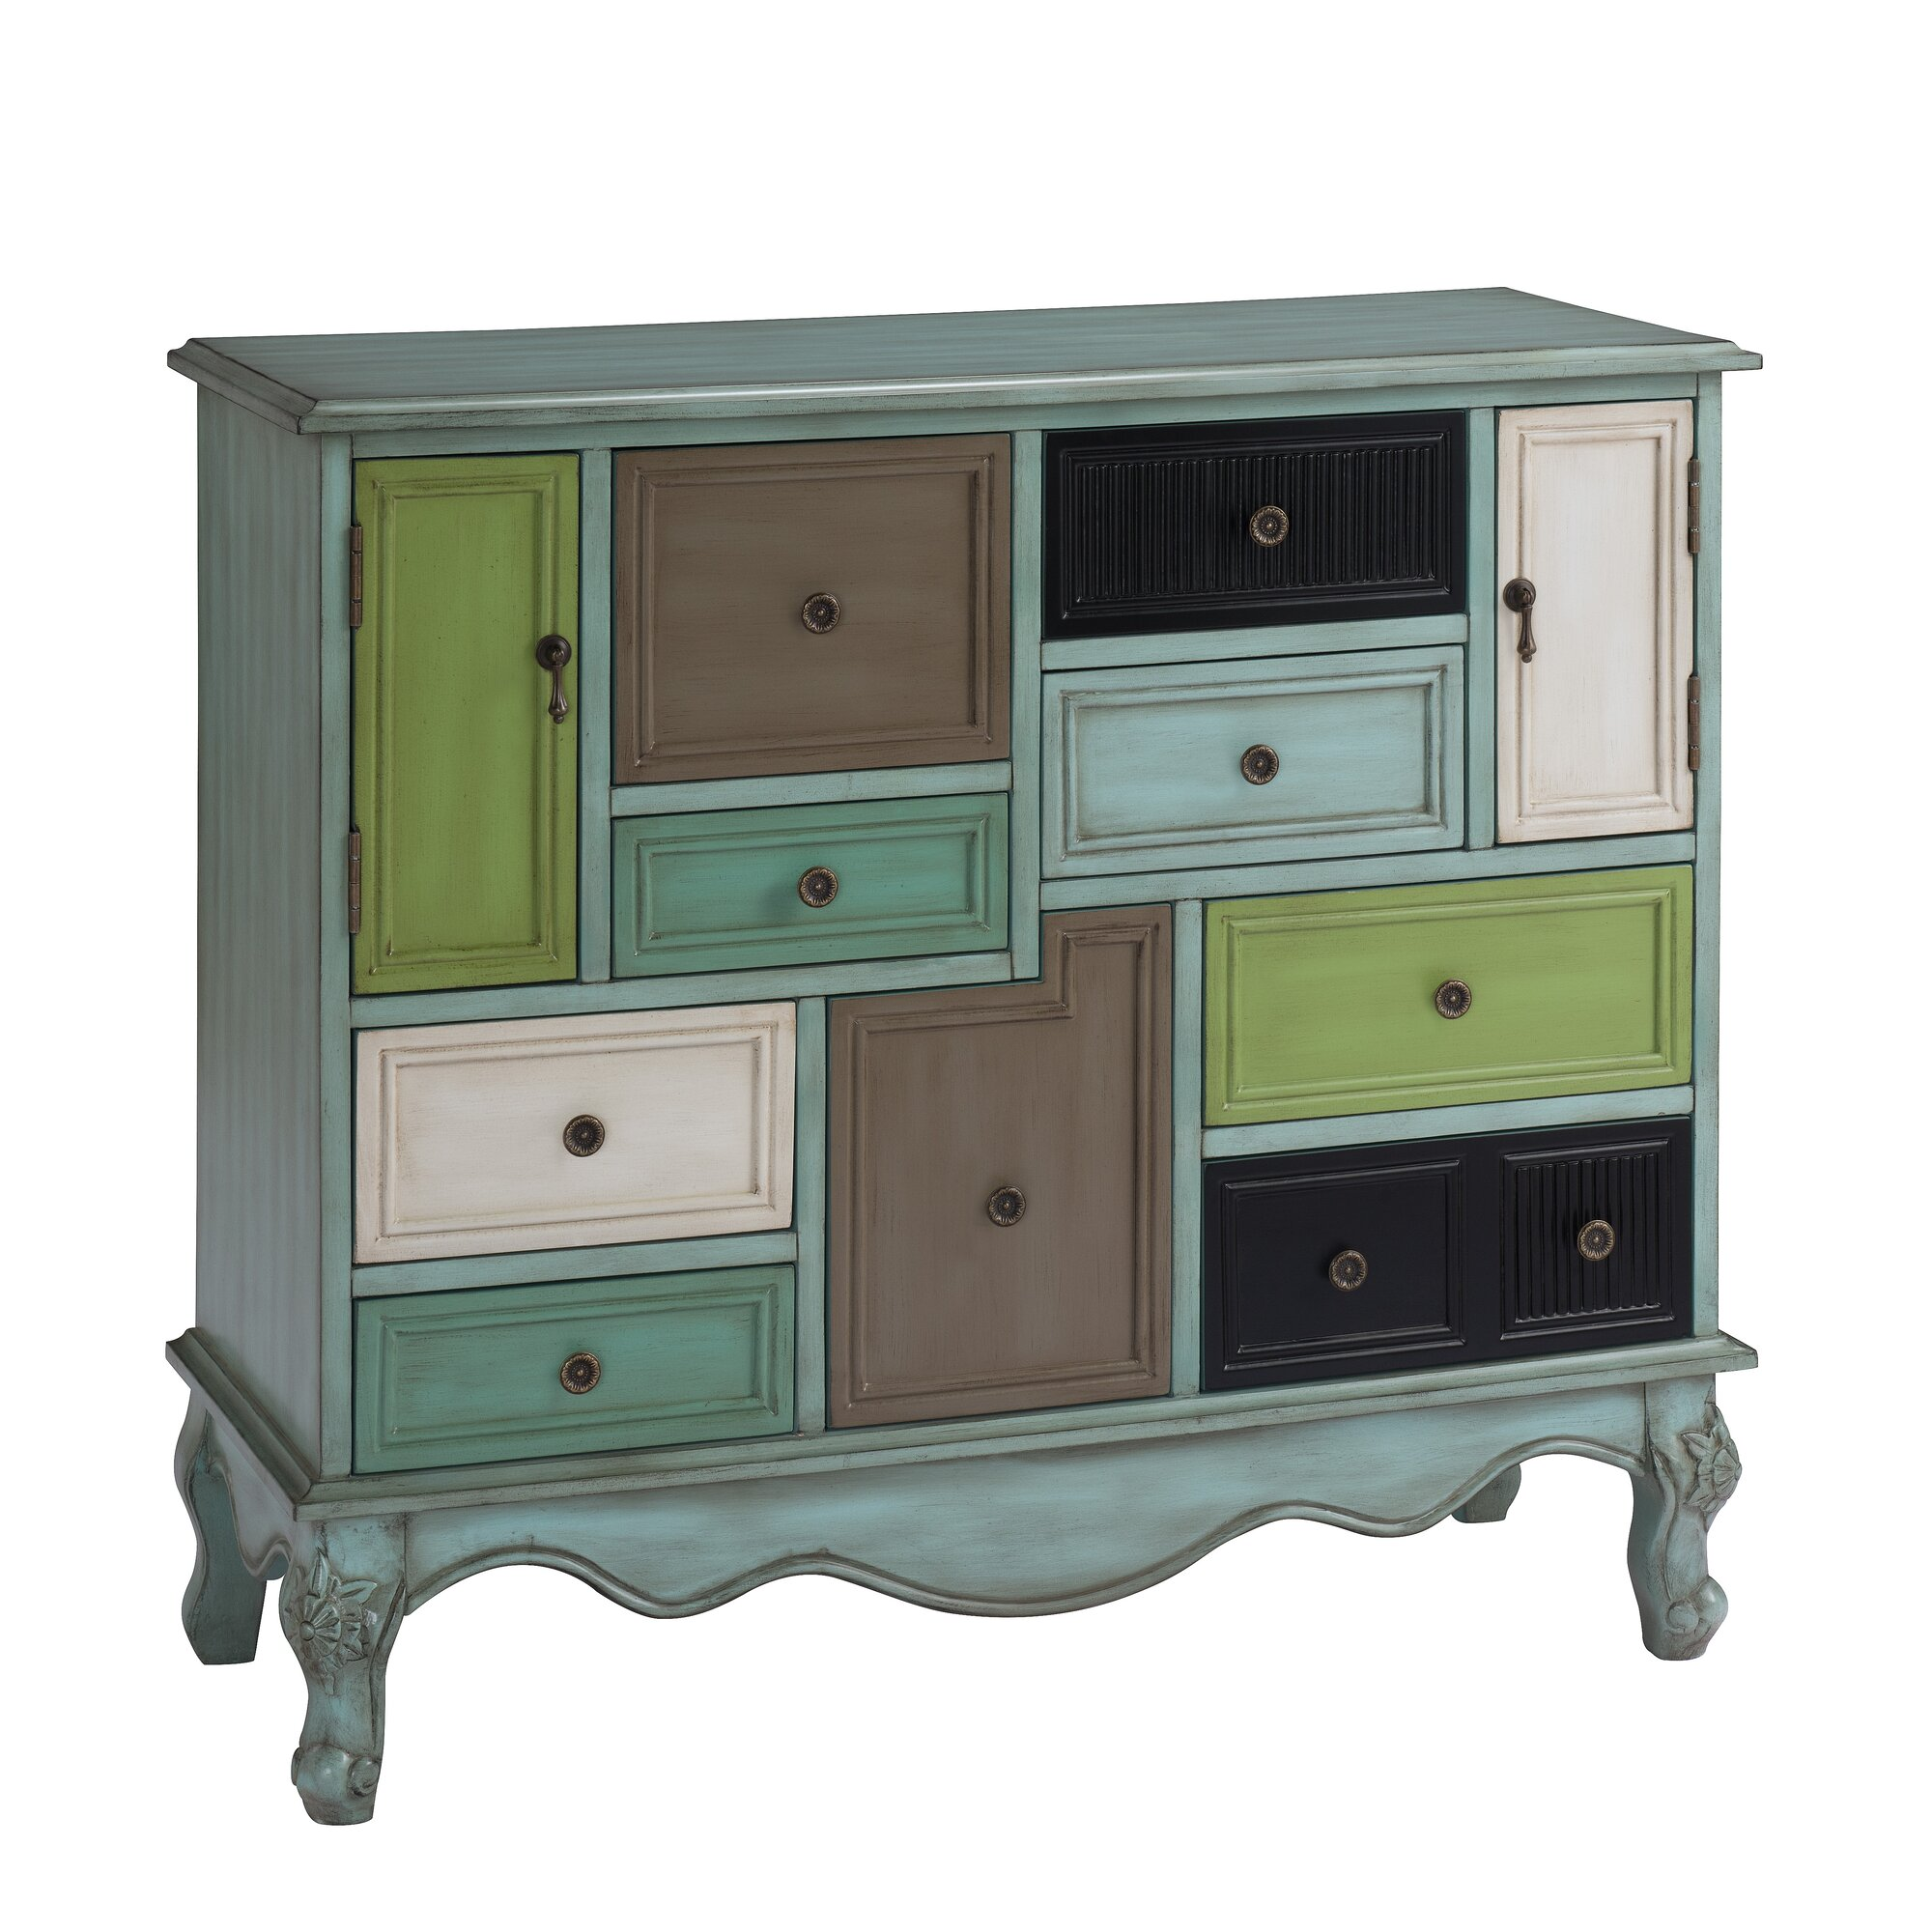 Accent cabinet with glass doors - Accent Cabinet With Glass Doors